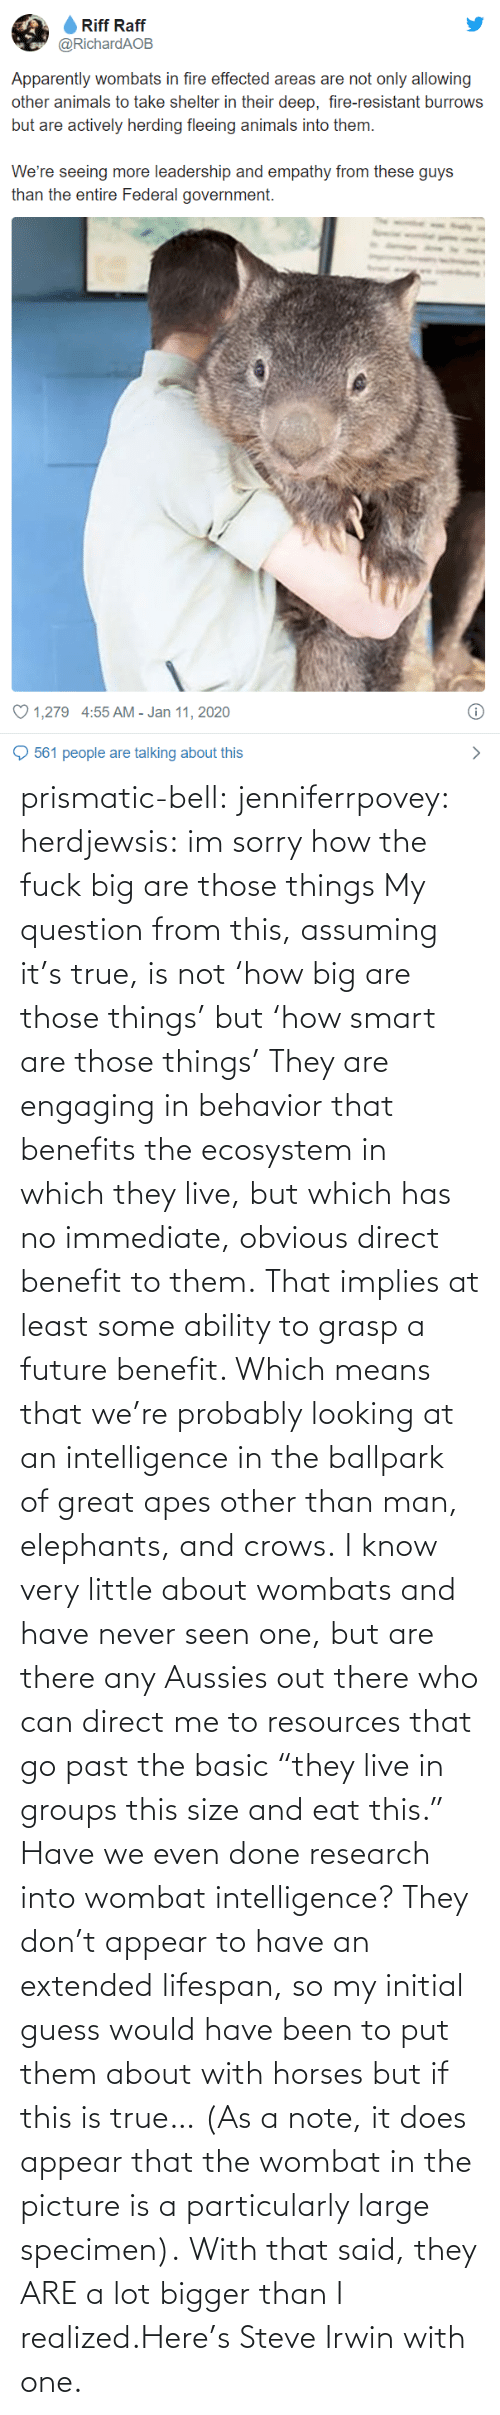 "Other Than: prismatic-bell:  jenniferrpovey: herdjewsis: im sorry how the fuck big are those things My question from this, assuming it's true, is not 'how big are those things' but 'how smart are those things' They are engaging in behavior that benefits the ecosystem in which they live, but which has no immediate, obvious direct benefit to them. That implies at least some ability to grasp a future benefit. Which means that we're probably looking at an intelligence in the ballpark of great apes other than man, elephants, and crows. I know very little about wombats and have never seen one, but are there any Aussies out there who can direct me to resources that go past the basic ""they live in groups this size and eat this."" Have we even done research into wombat intelligence? They don't appear to have an extended lifespan, so my initial guess would have been to put them about with horses but if this is true… (As a note, it does appear that the wombat in the picture is a particularly large specimen).  With that said, they ARE a lot bigger than I realized.Here's Steve Irwin with one."